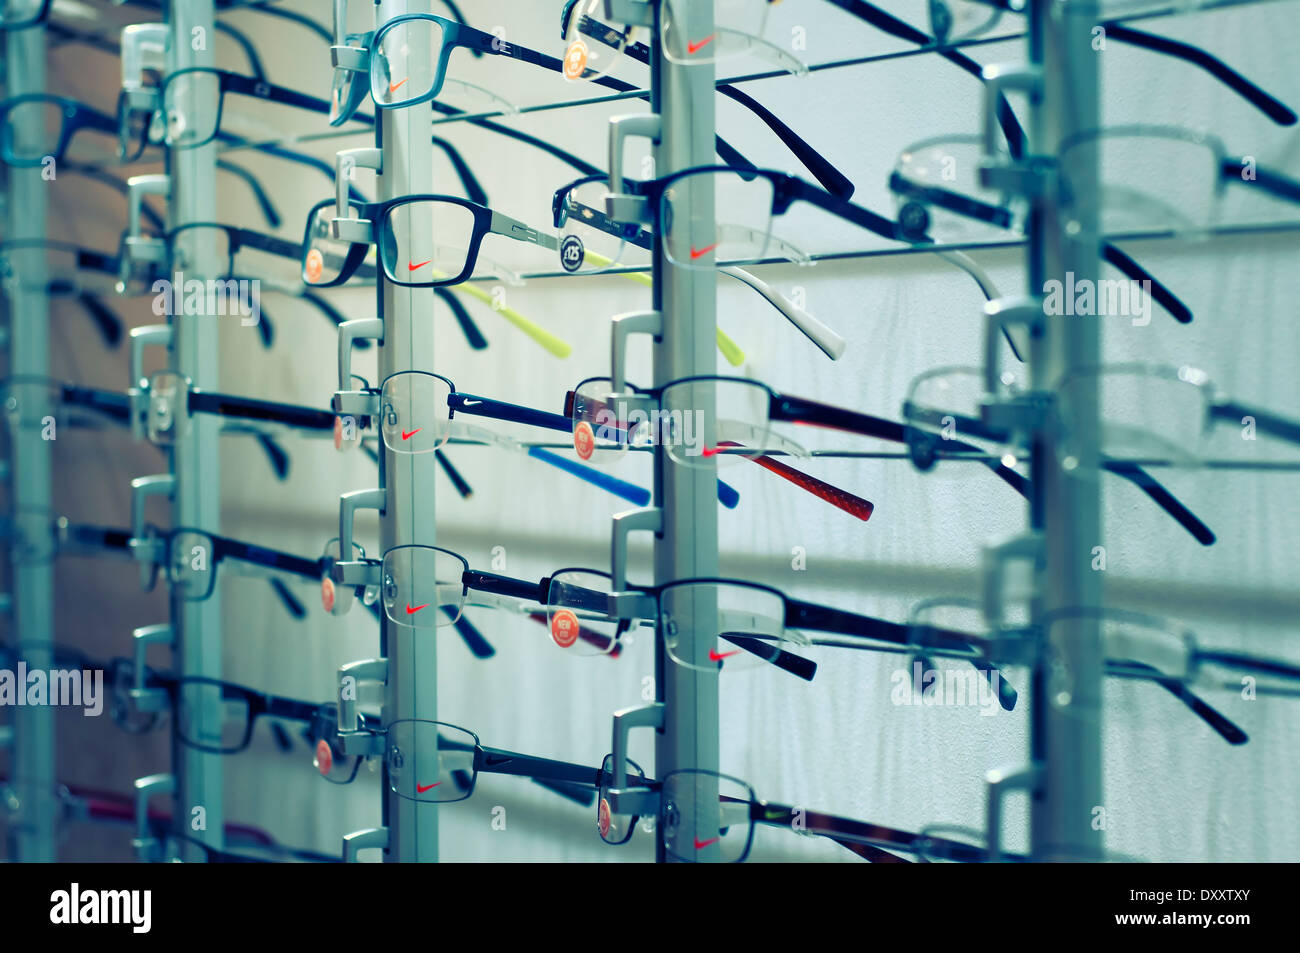 Blind Glasses Stock Photos & Blind Glasses Stock Images - Alamy